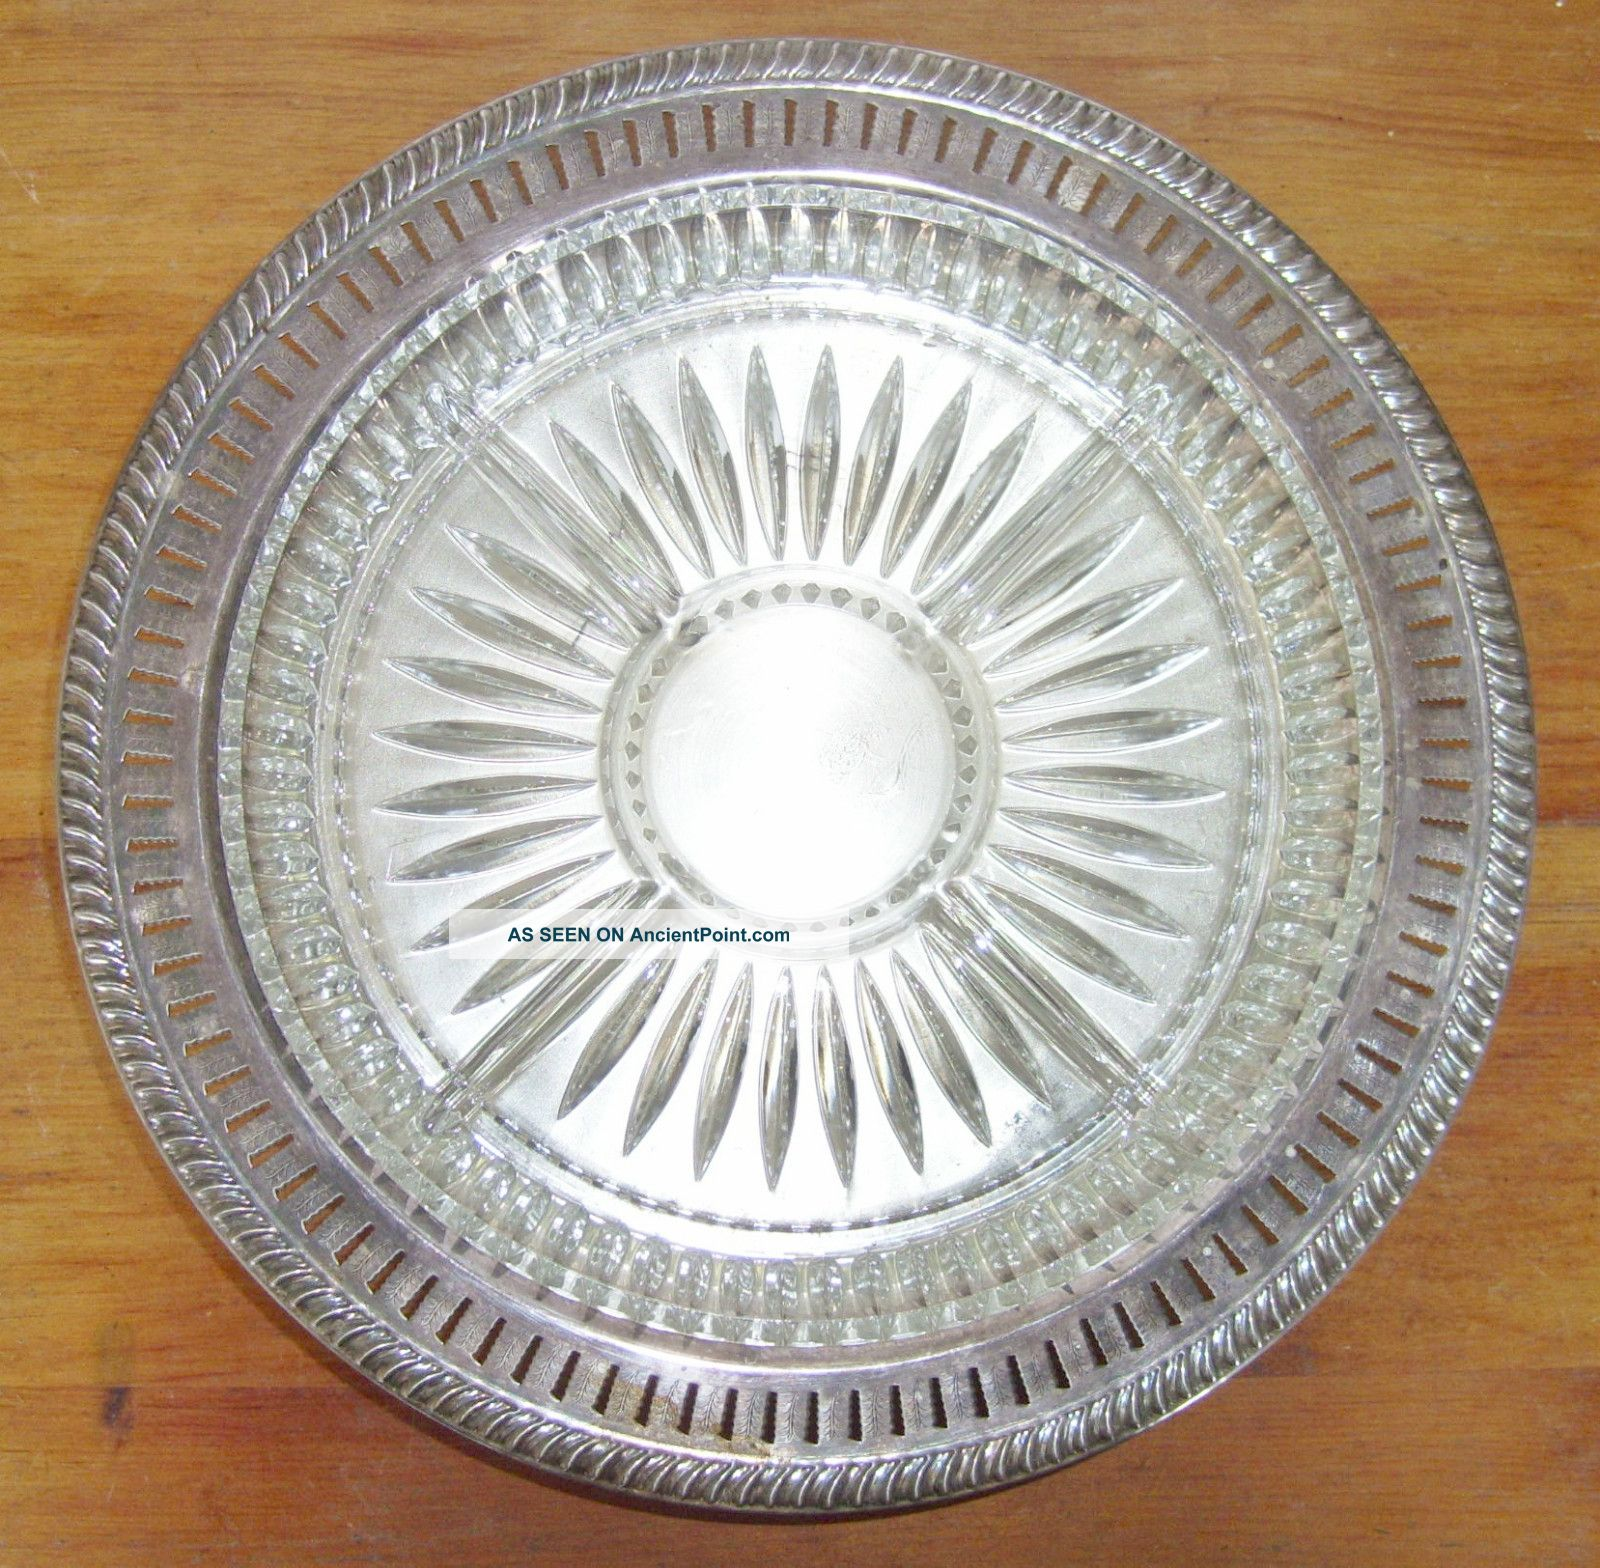 F.  B.  Rogers Silver Co.  1883 Lazy Susan Serving Dish Platter For Condiments Etc. Platters & Trays photo